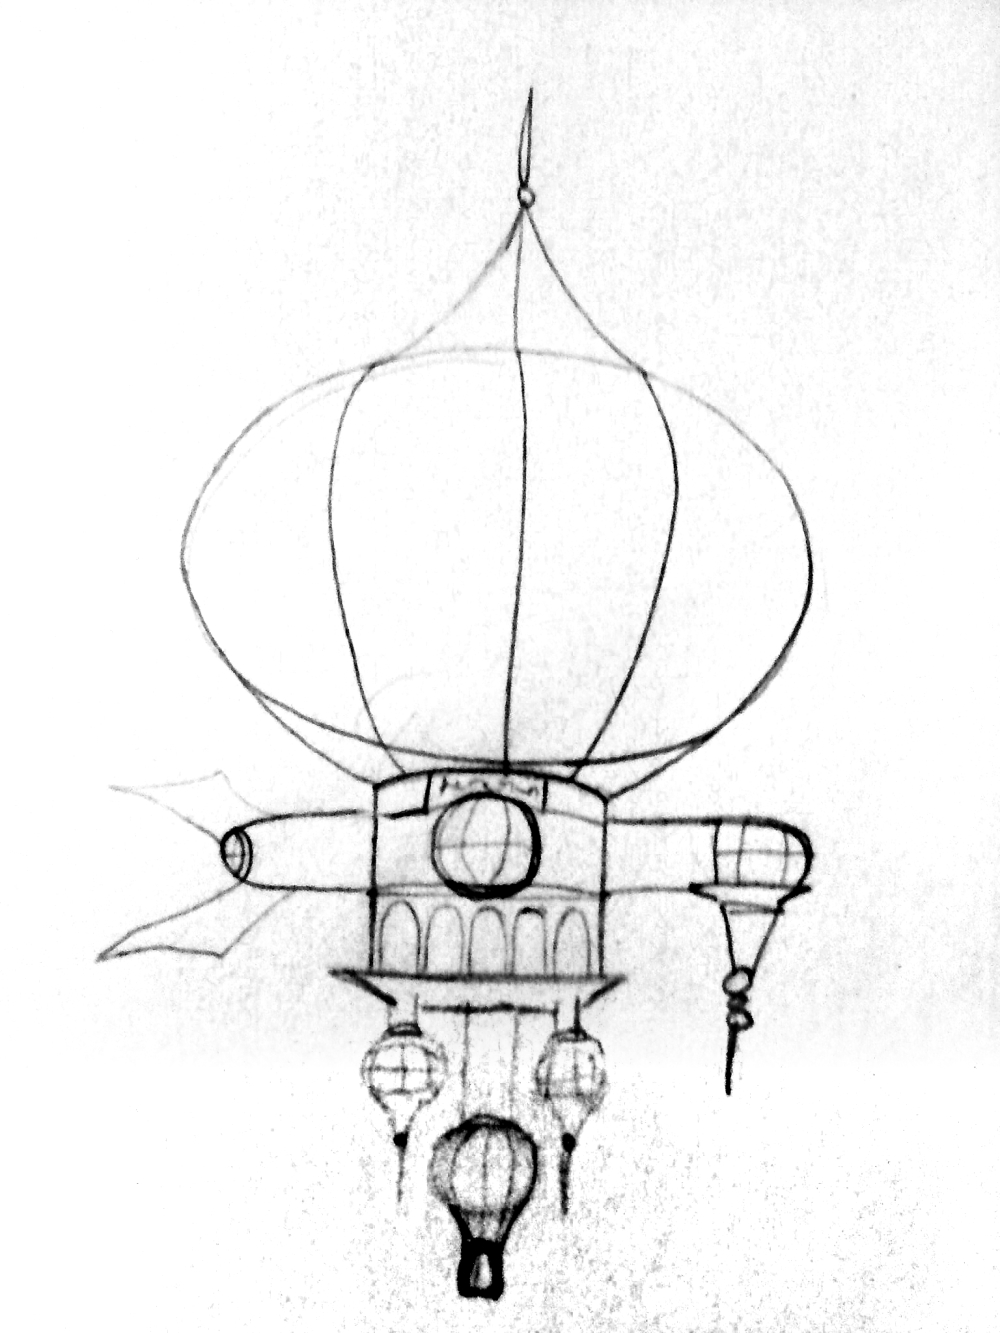 A sketch of the airship I drew before building it.